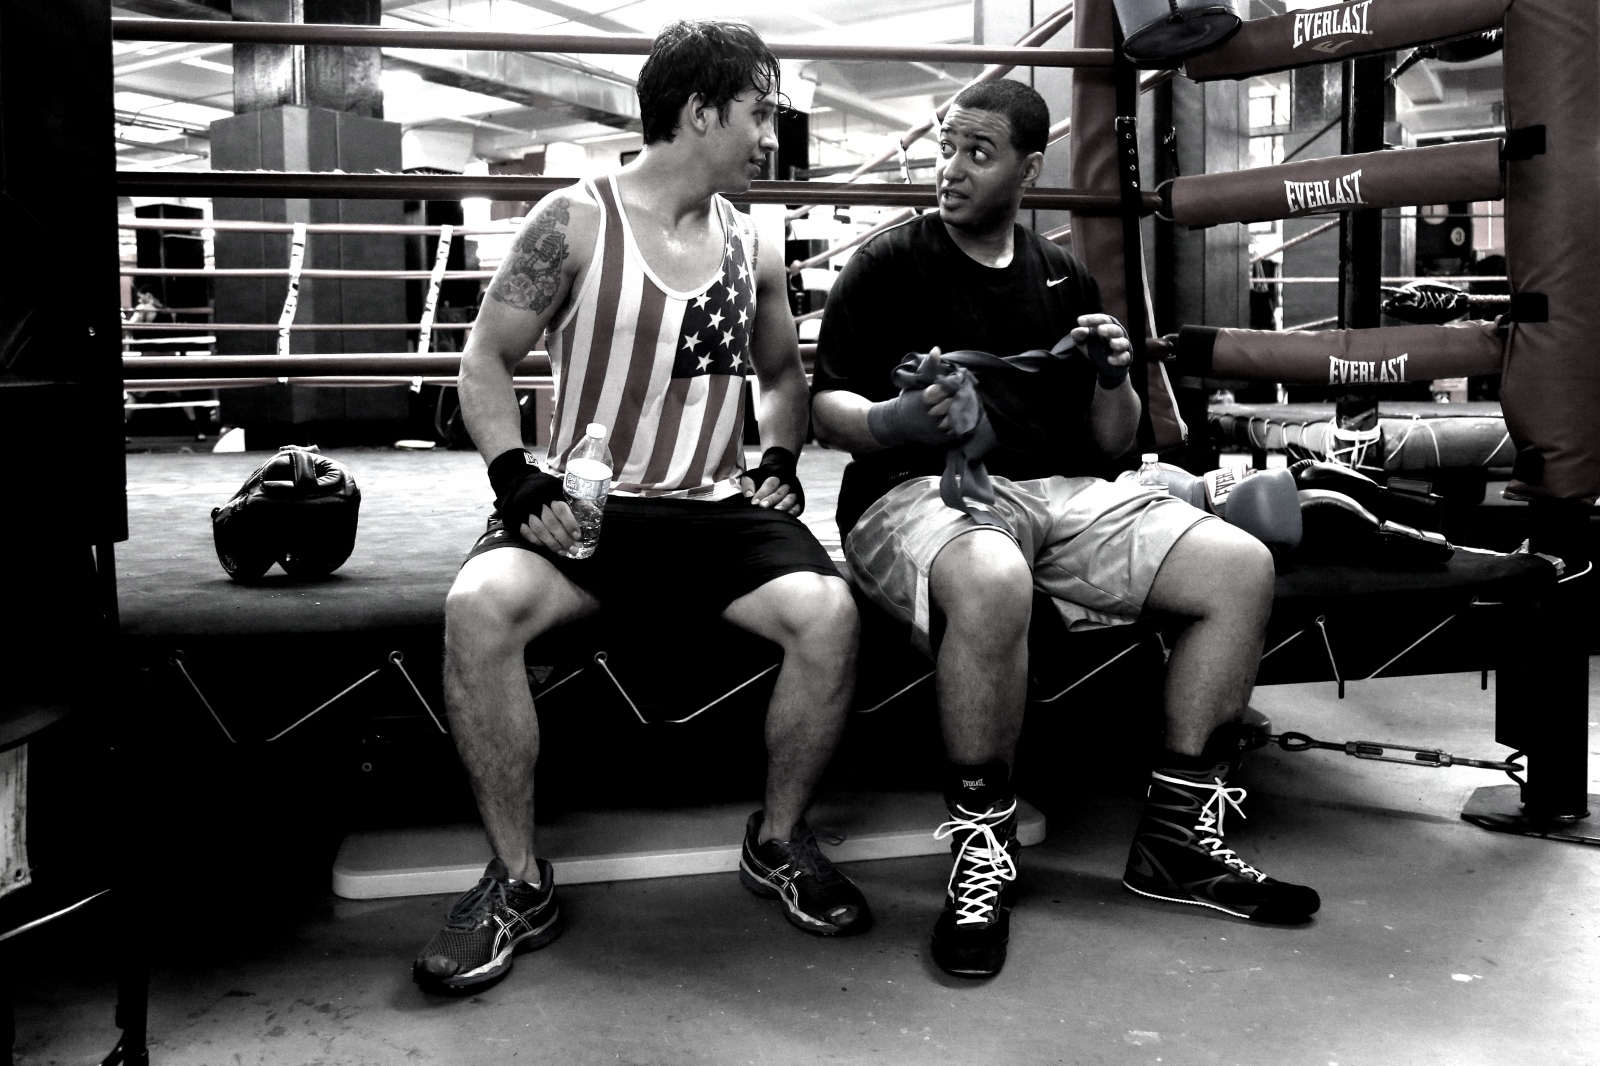 Art and Documentary Photography - Loading boxing_7.jpg